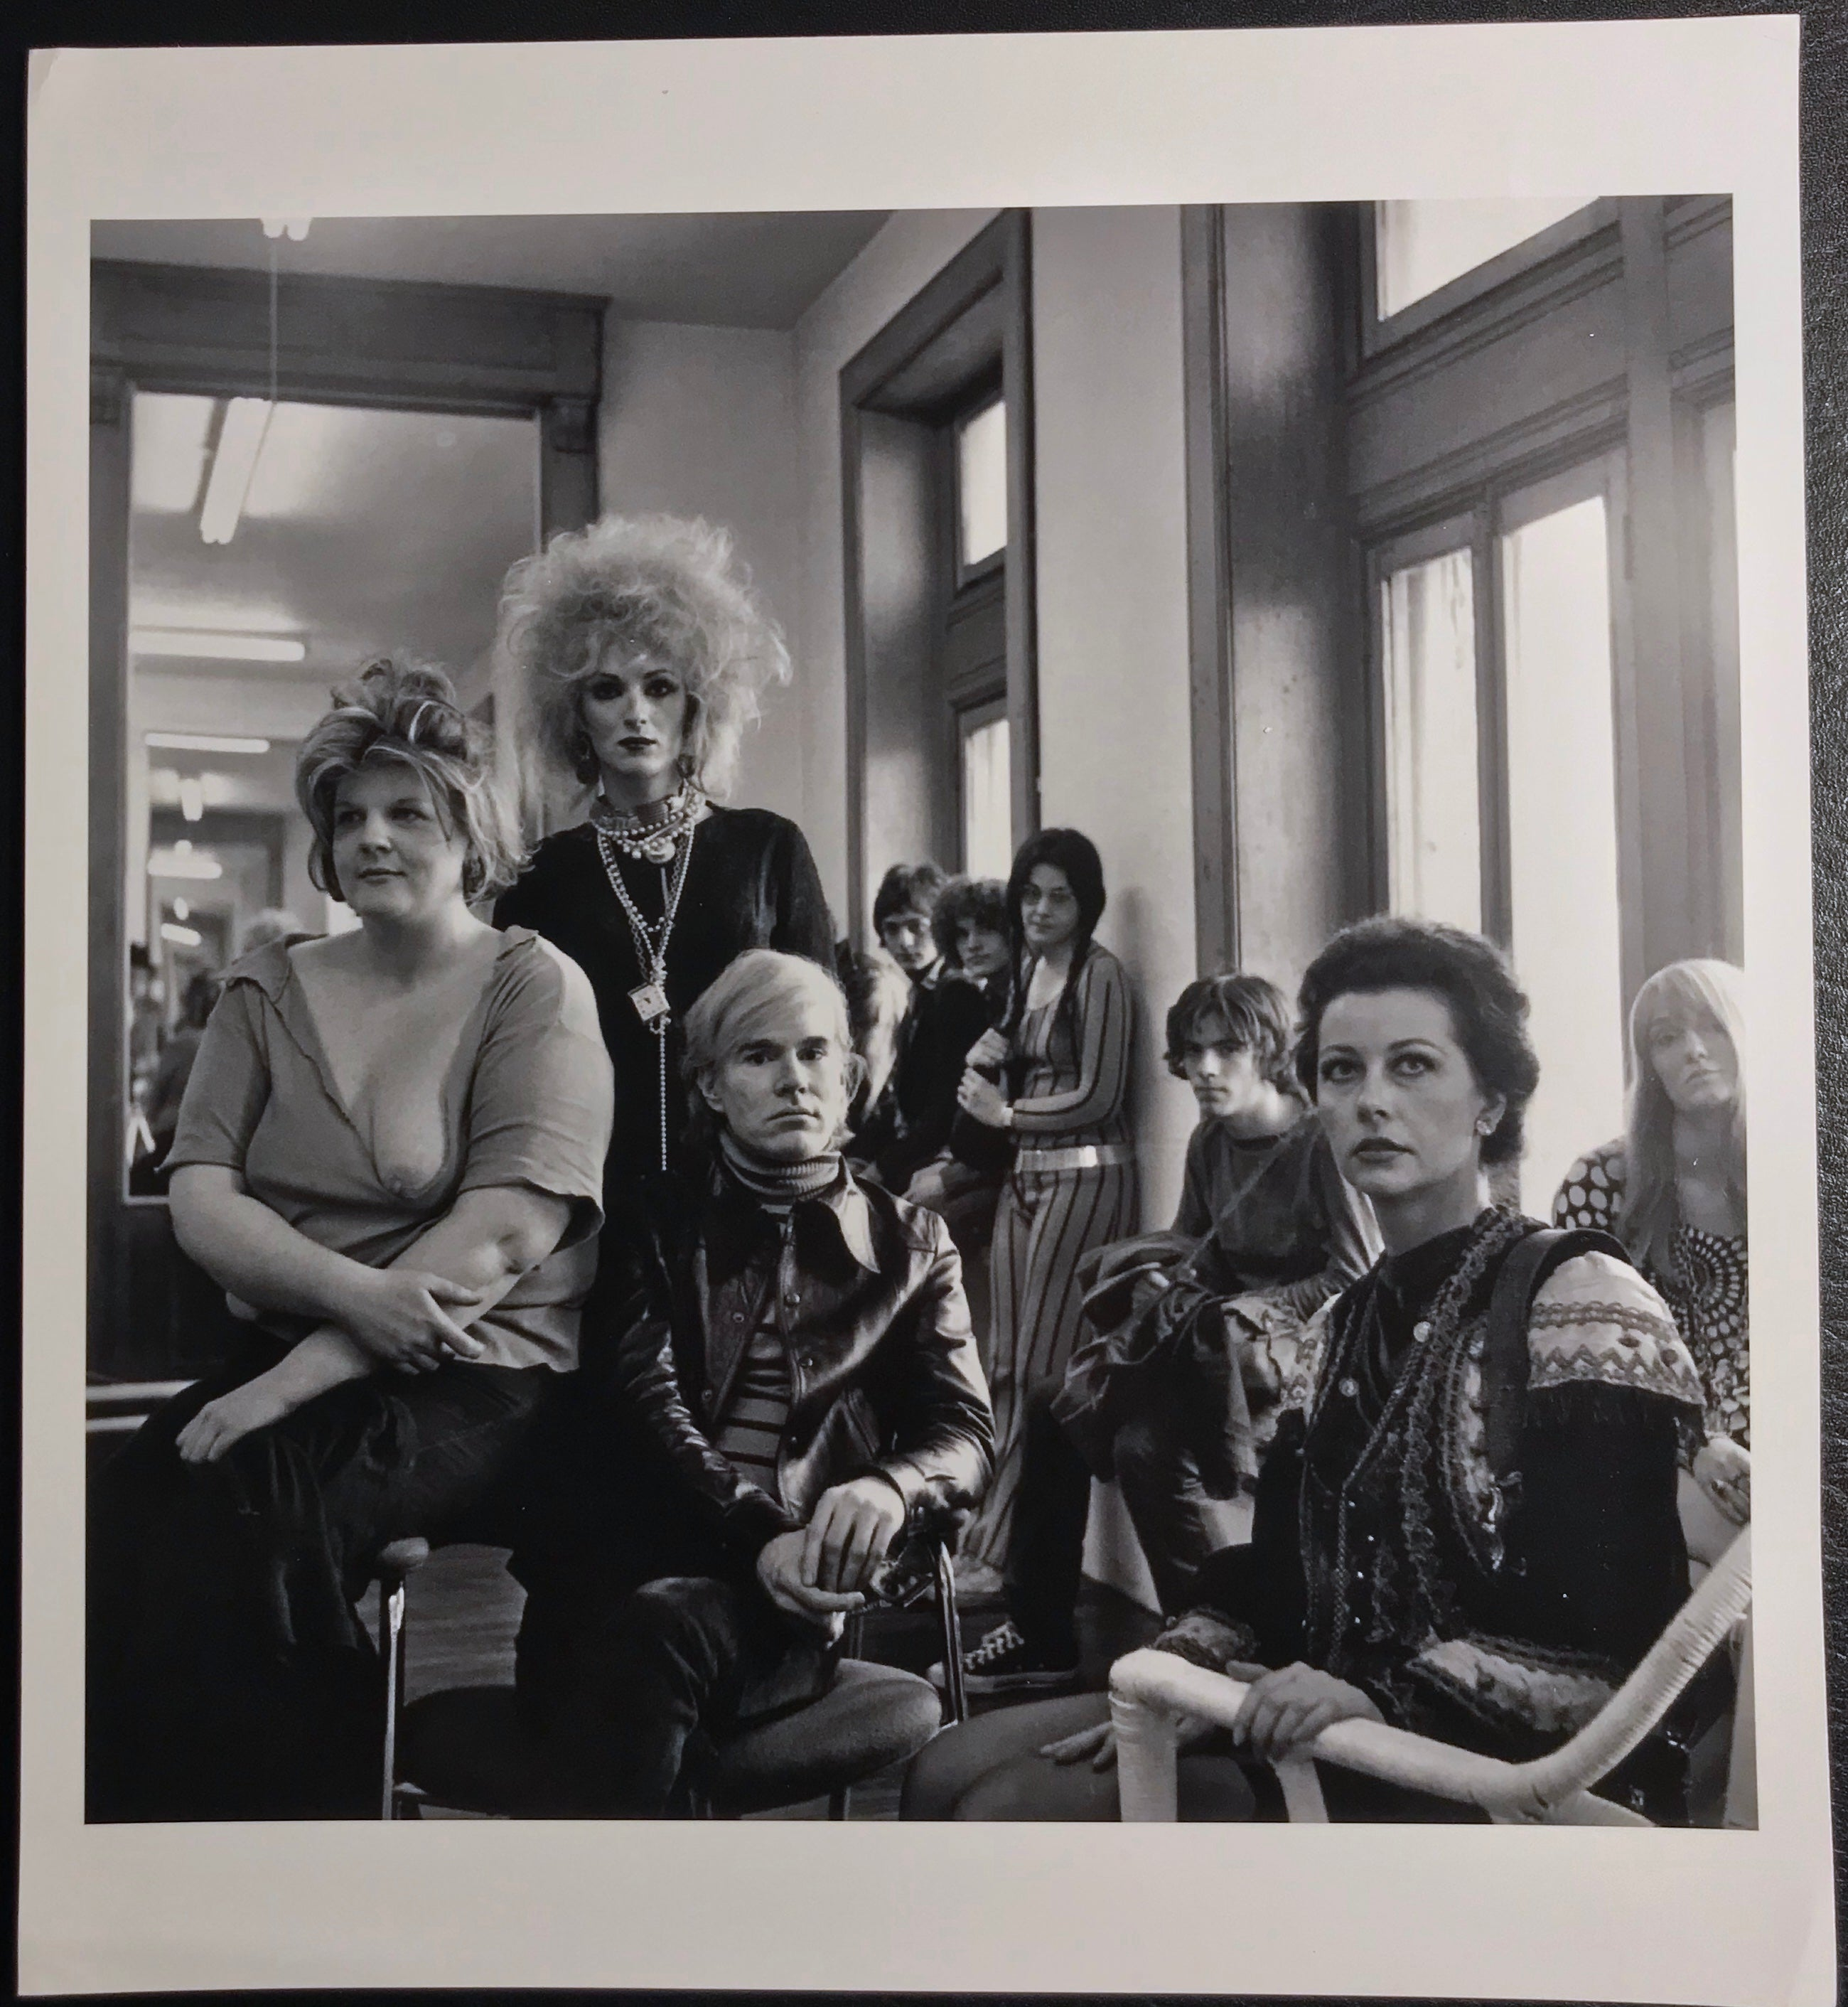 Andy Warhol & The Factory, Cecil Beaton, 1969